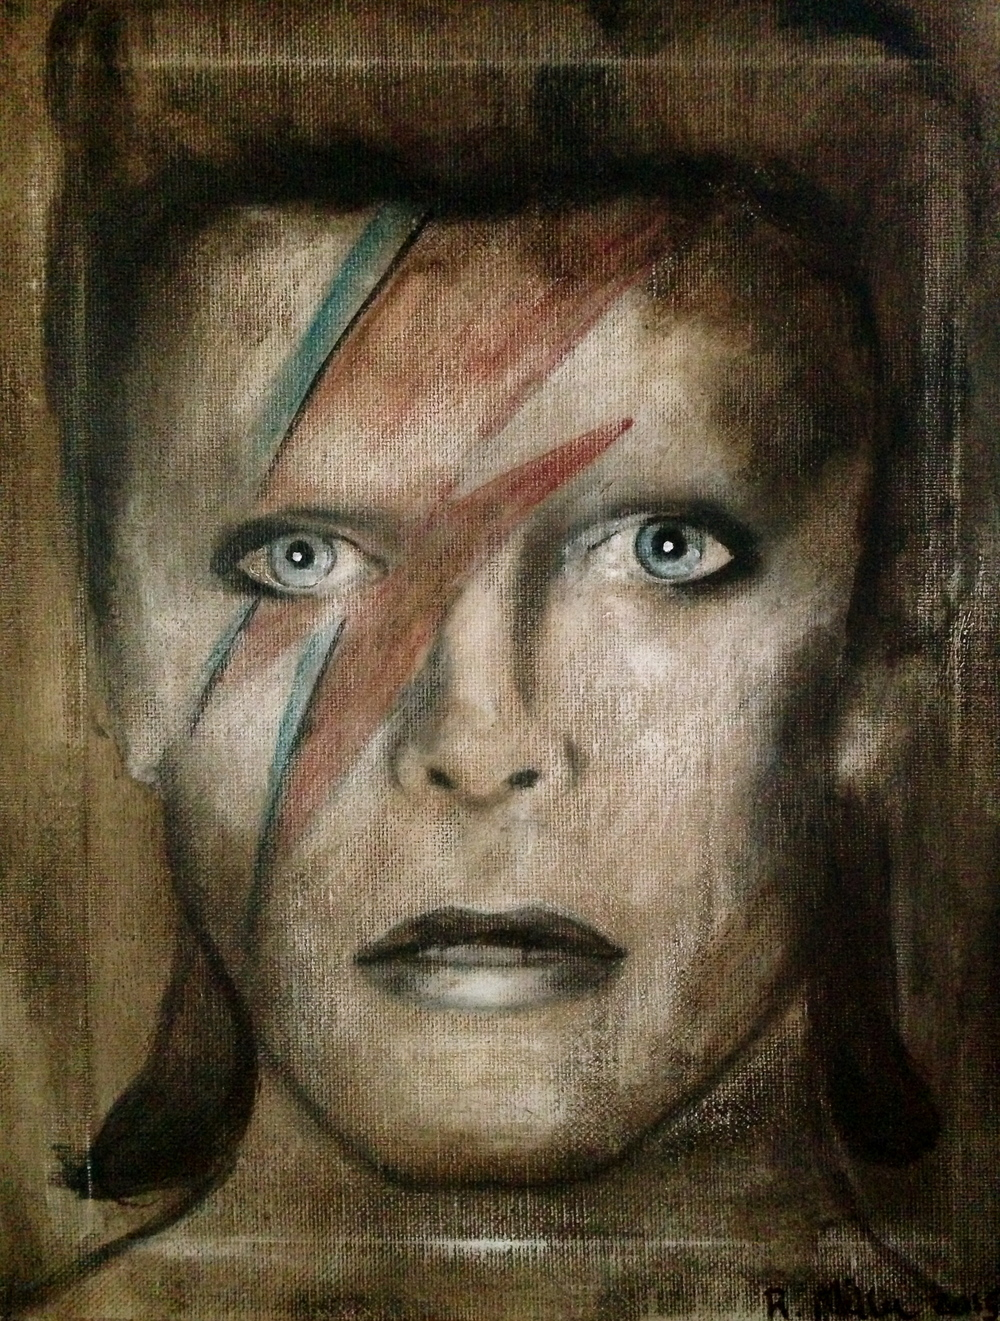 David Bowie/Ziggy Stardust, 2015   Acrylic & oil on canvas